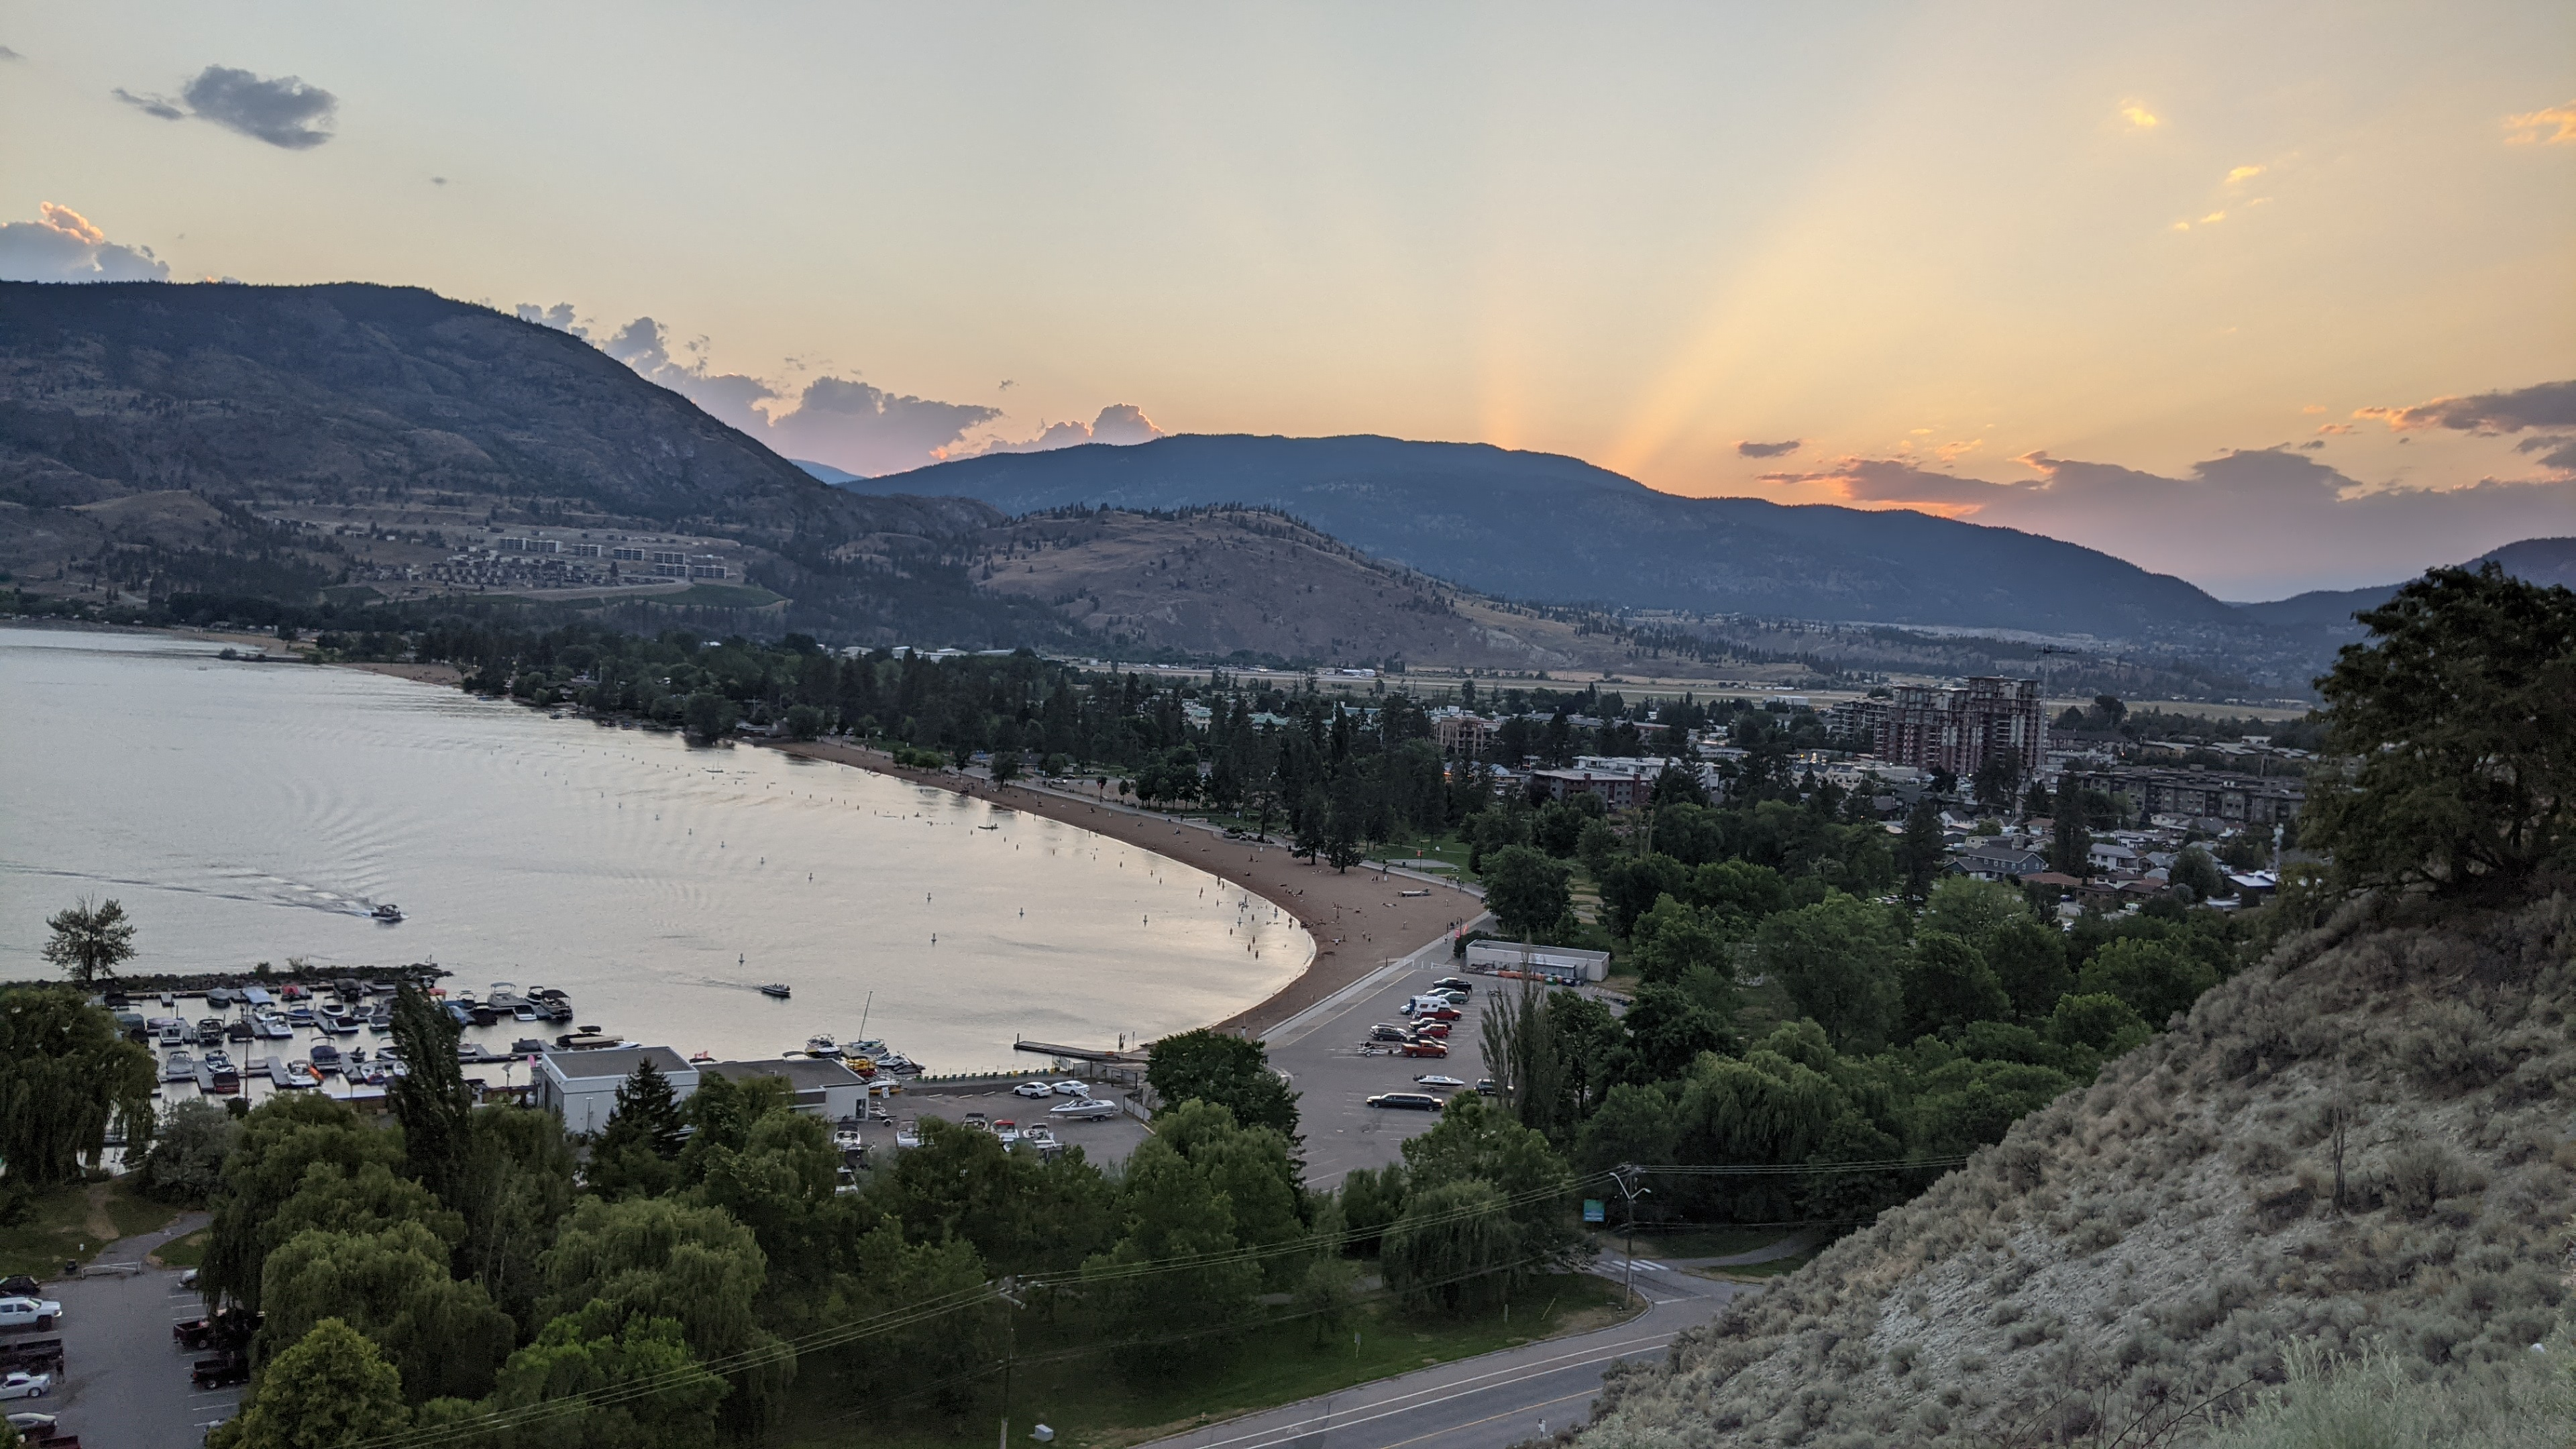 Penticton Lakeview Lookout Airbnb View